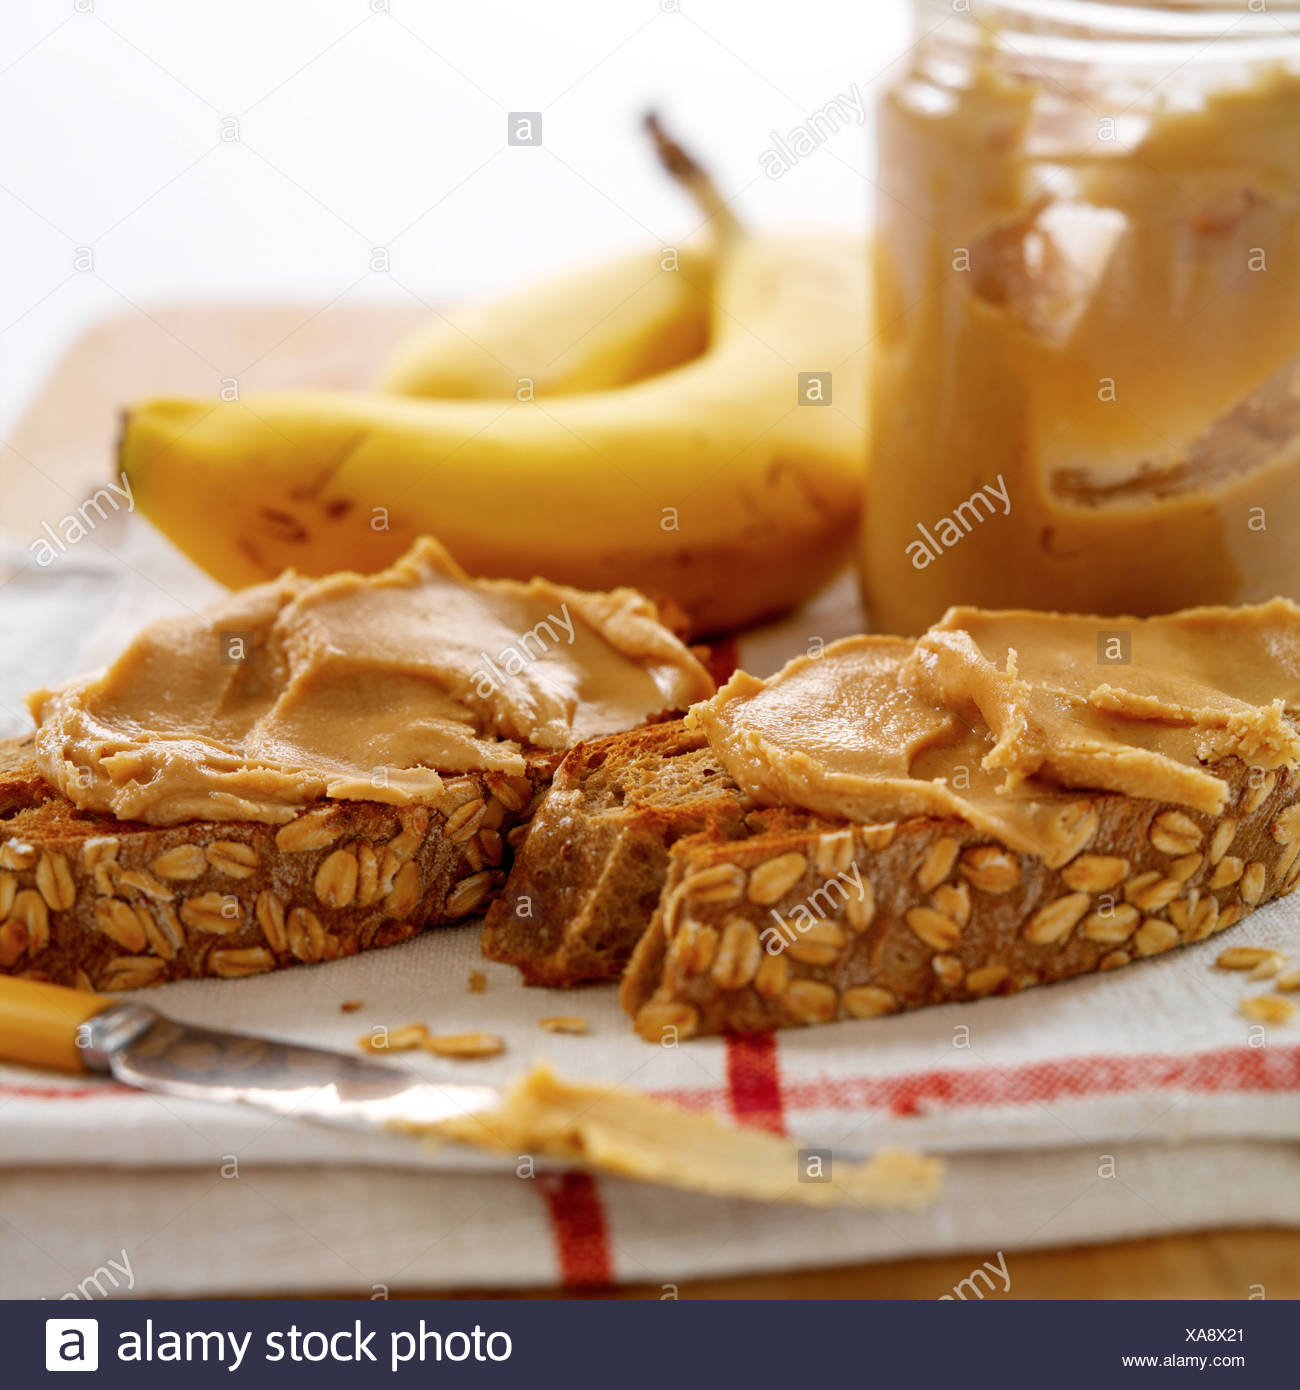 Peanut Butter On Toast - Stock Image